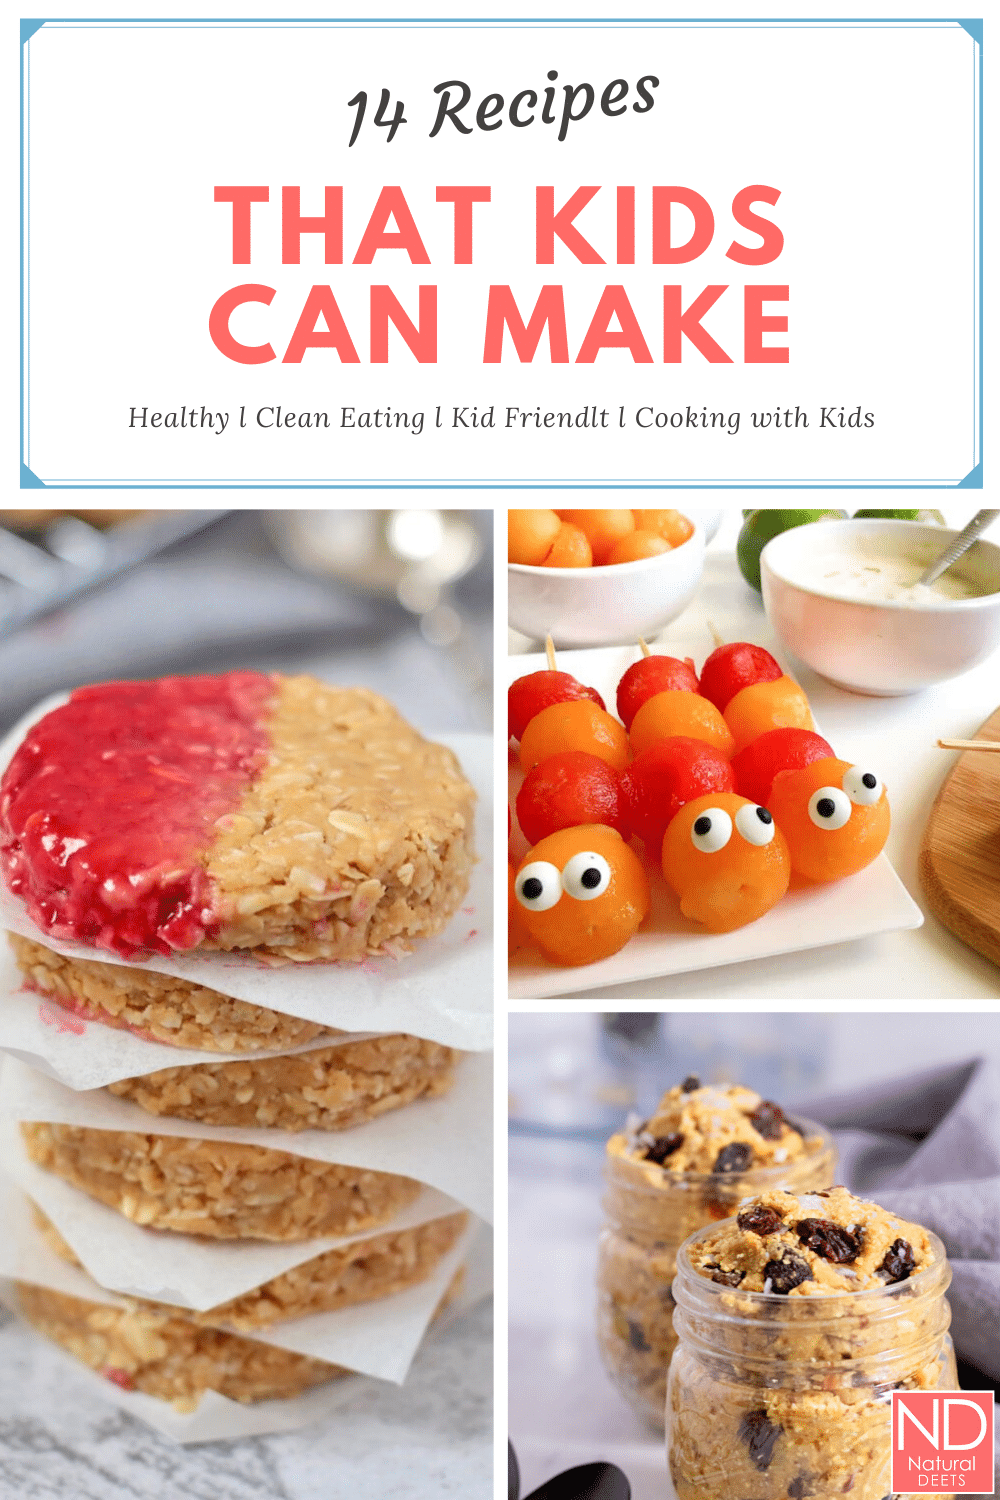 pinterest pin that says 14 recipes that kids can make and 3 pictures of recipes in the blog post